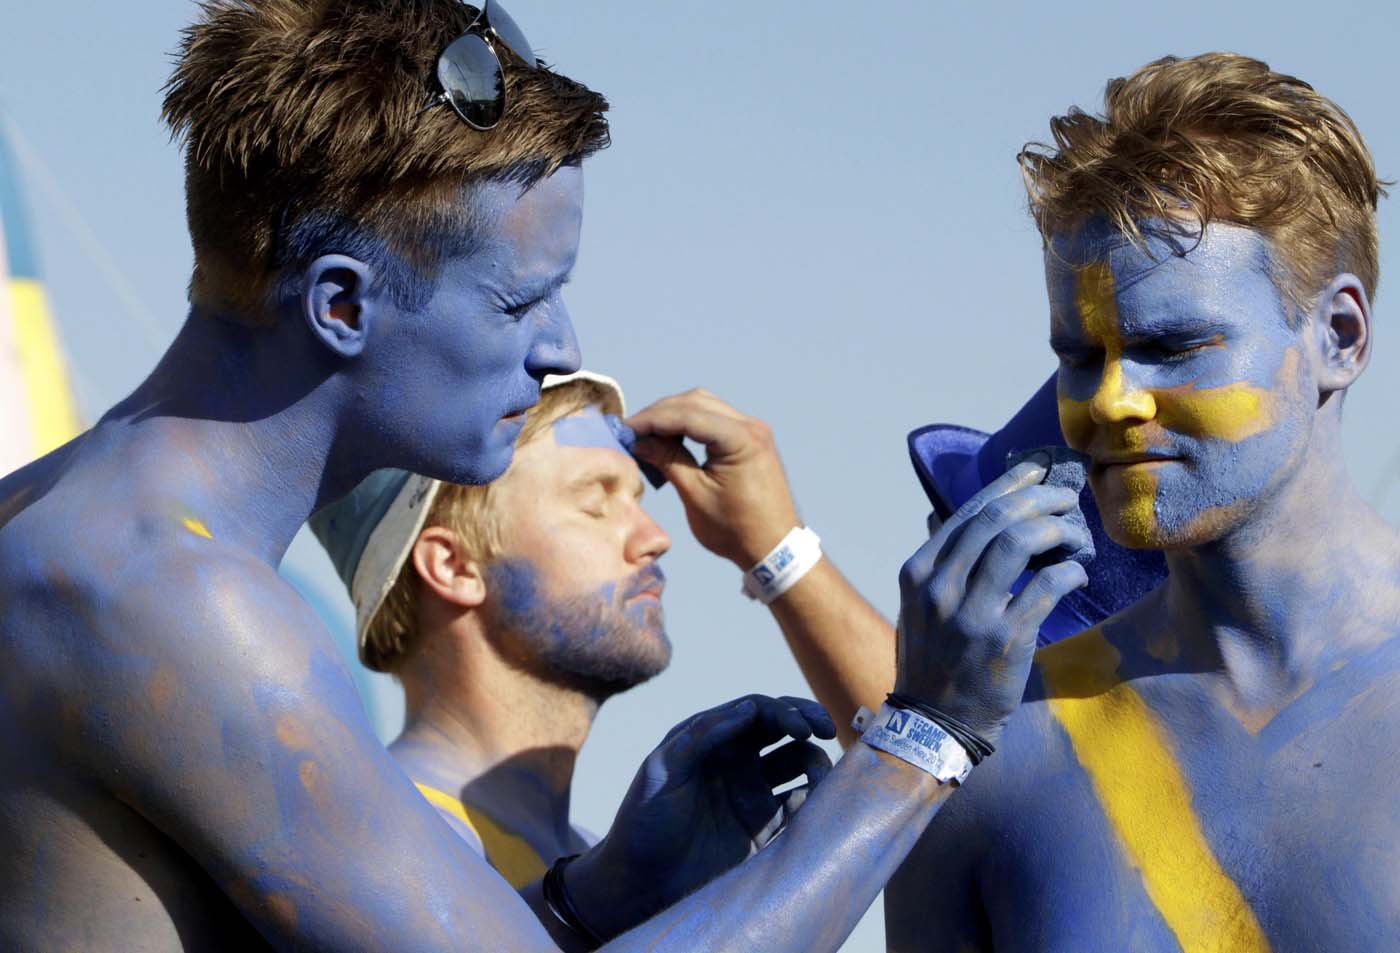 Sweden soccer fans paint each others faces before marching to the Olympic stadium in Kiev June 11, 2012. Sweden will play its first match of the Euro 2012 soccer championships against Ukraine in Kiev on Monday. (Anatolii Stepanov/Reuters)